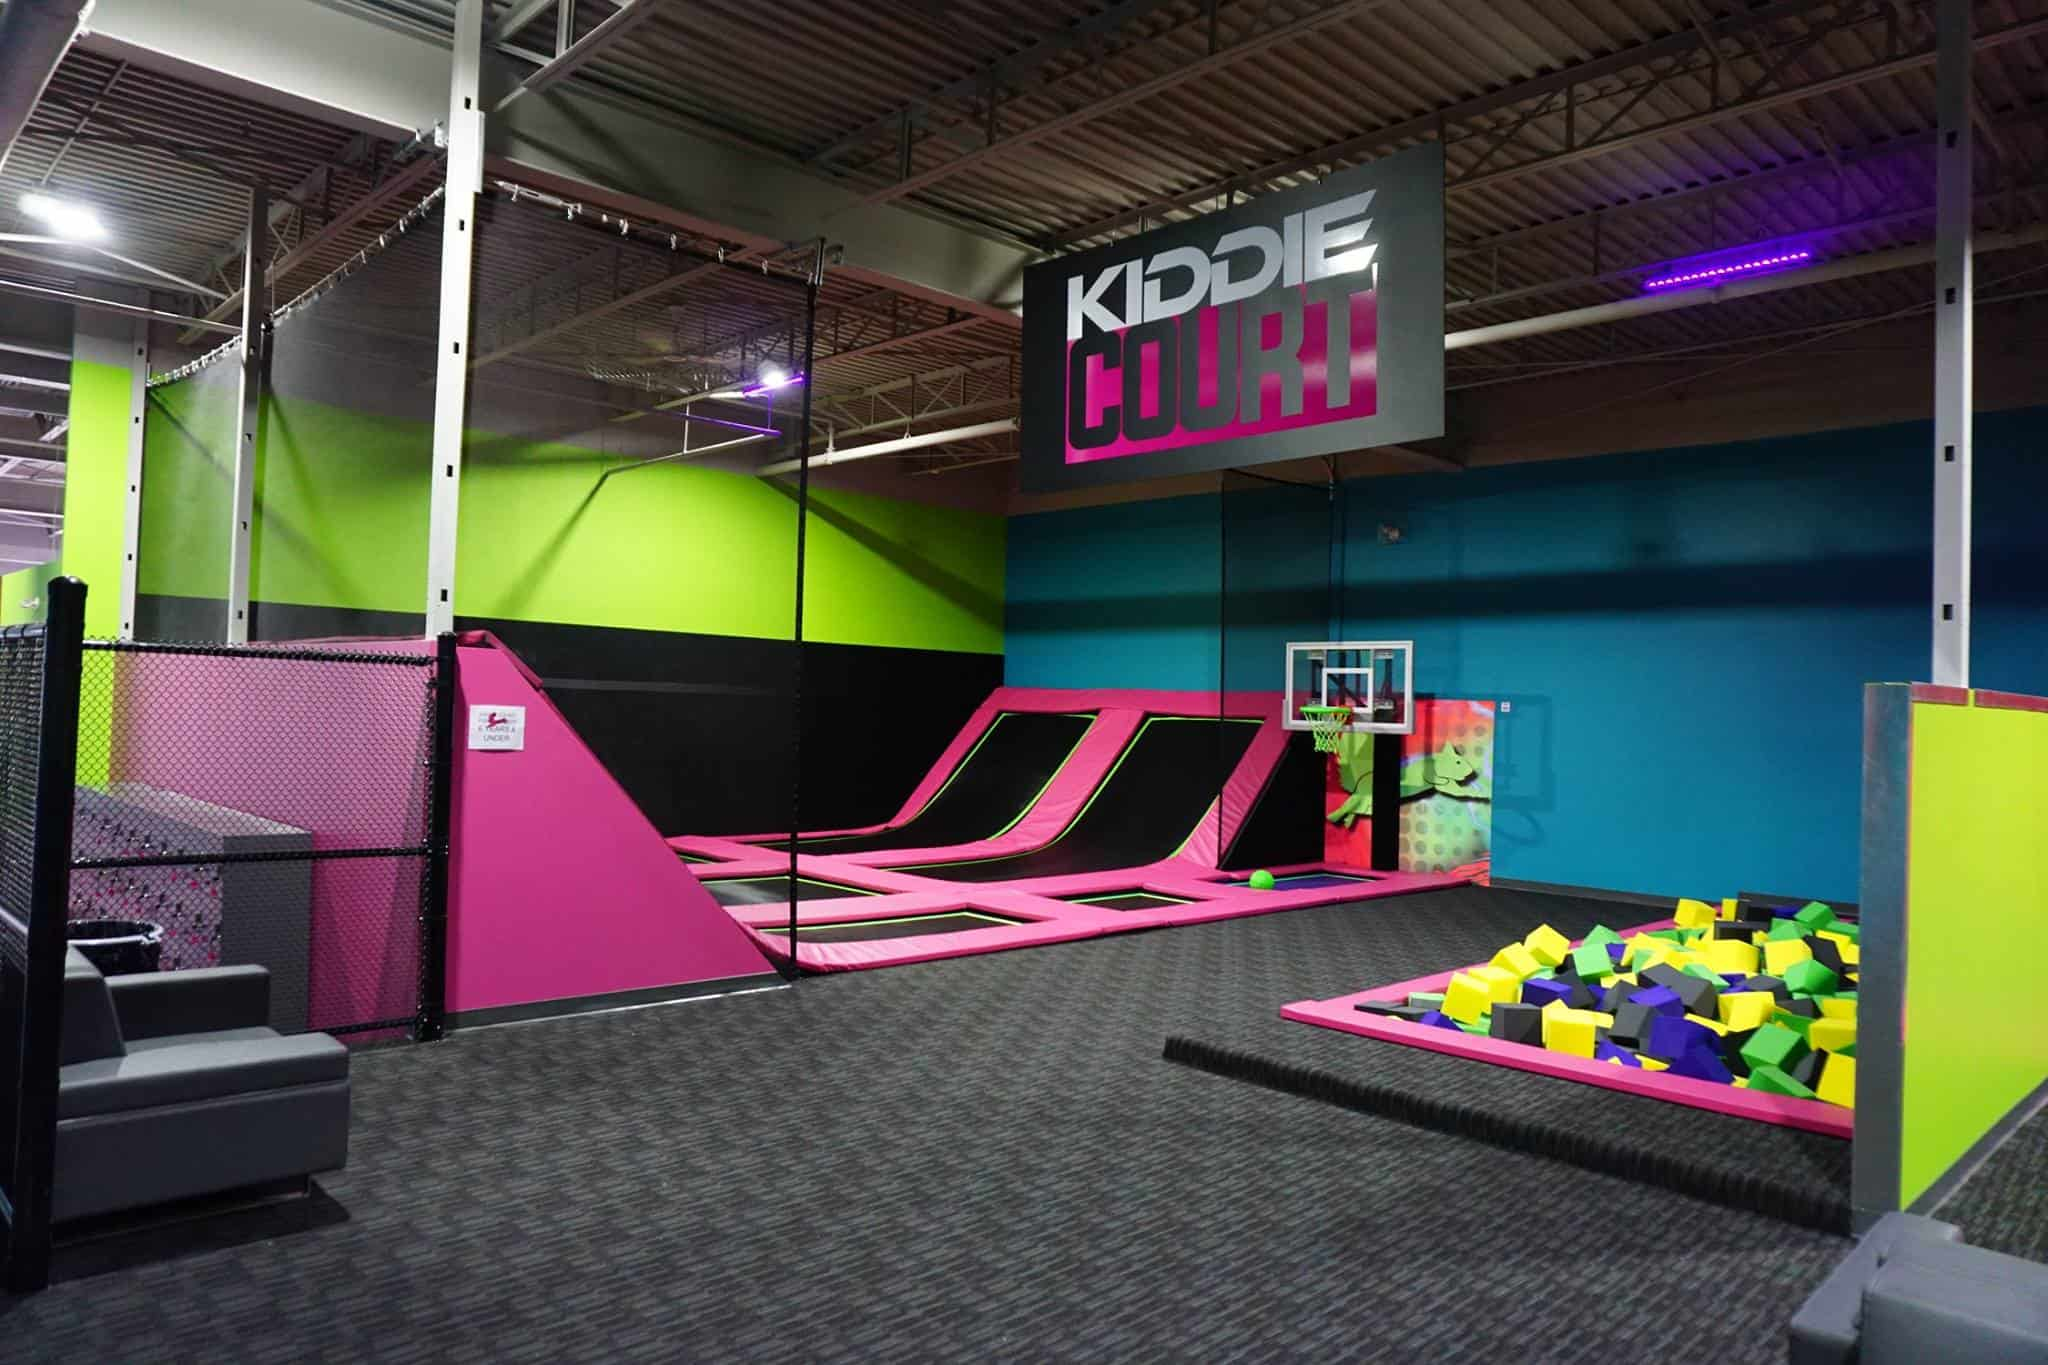 Kiddie Court